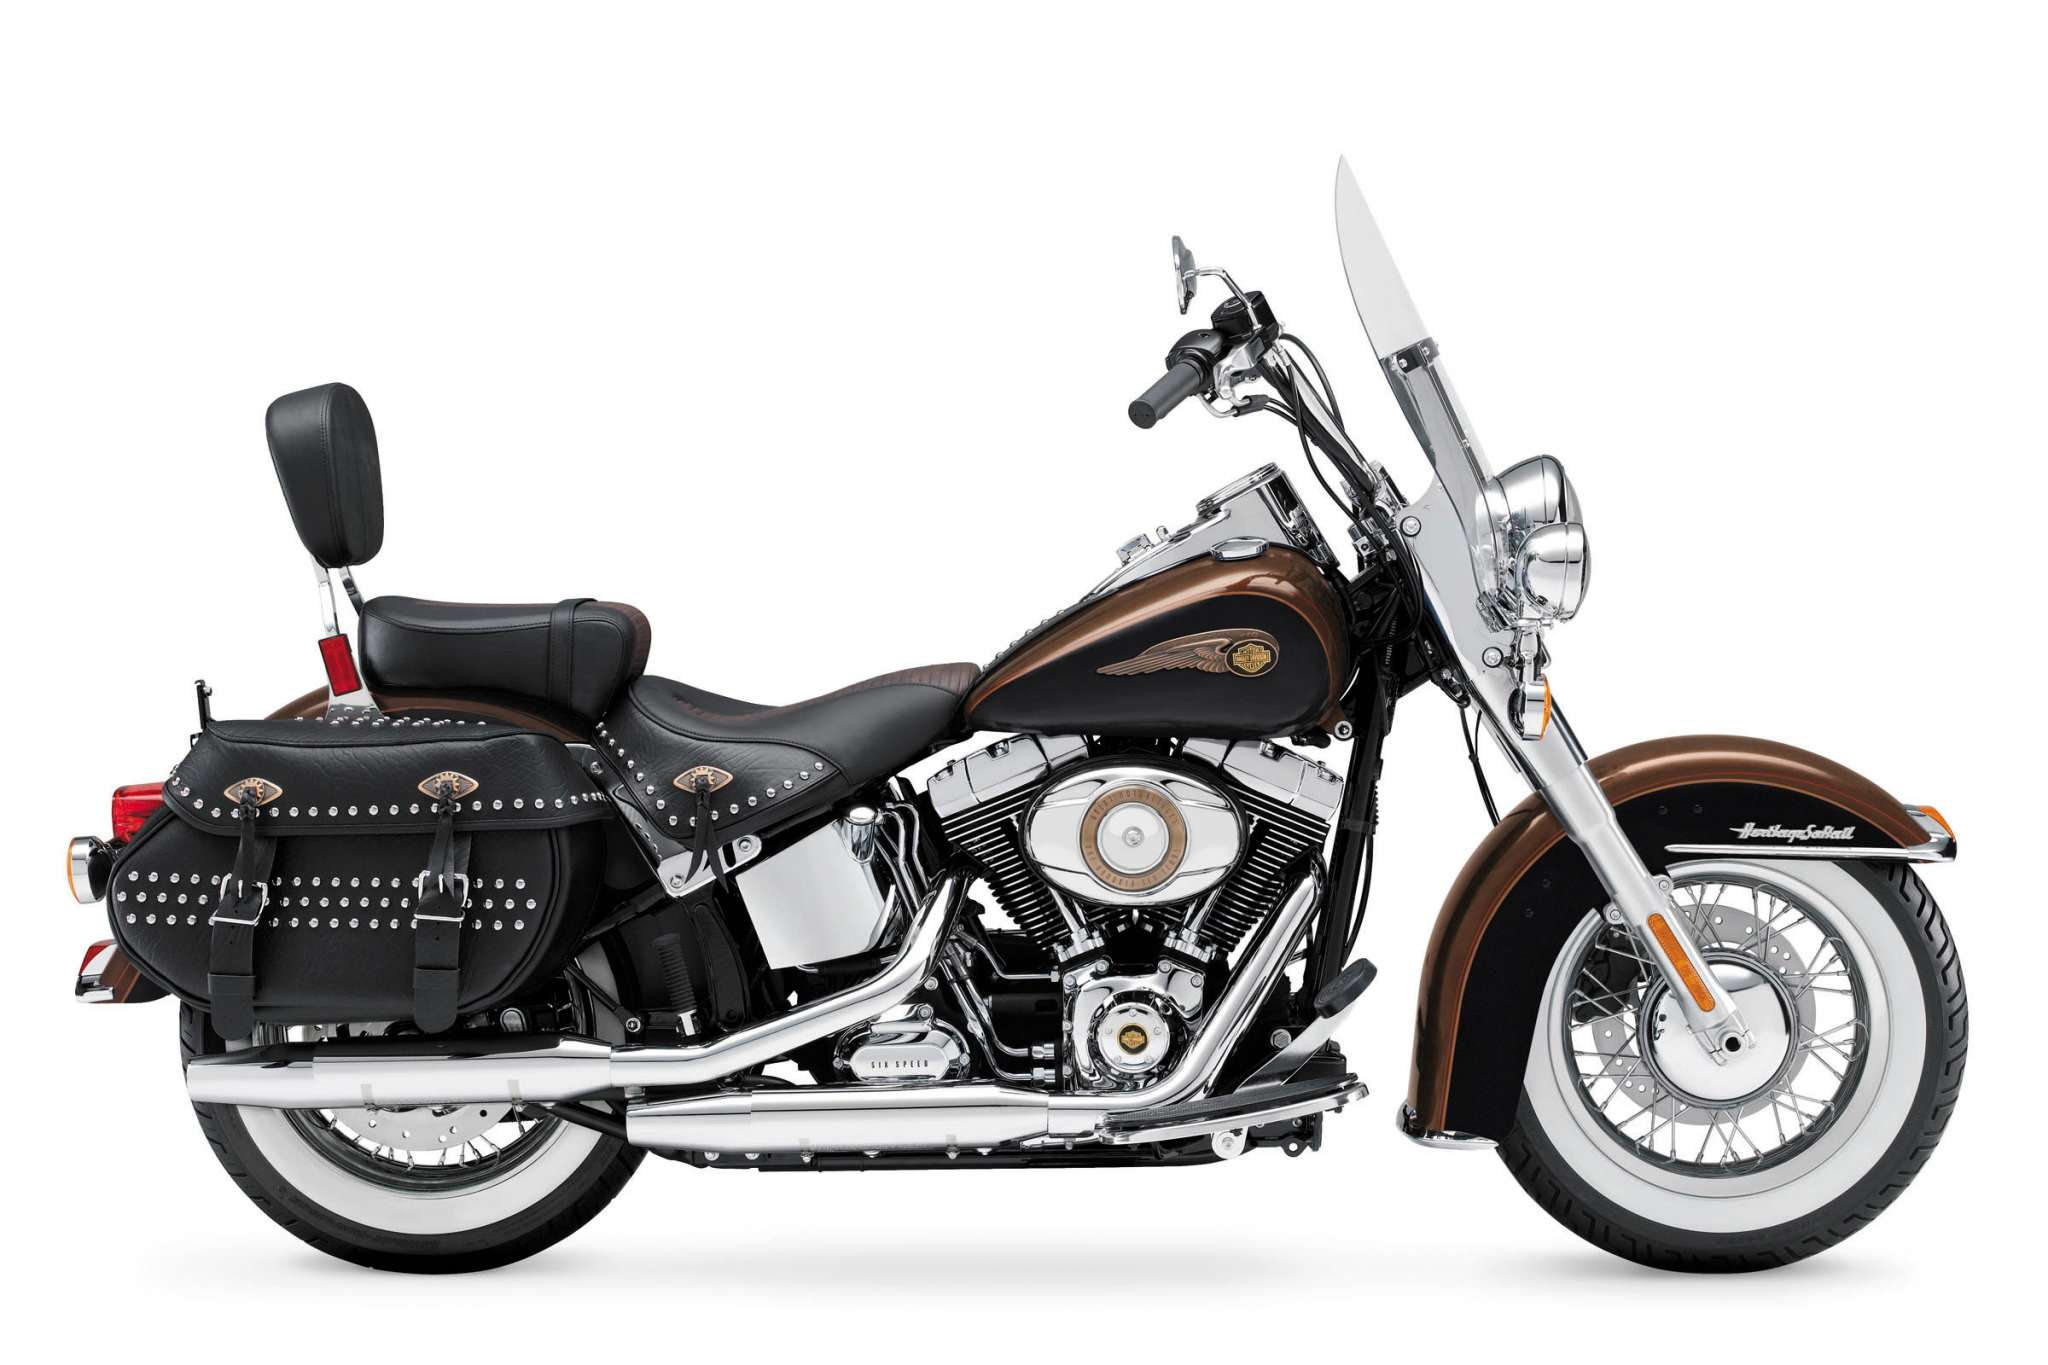 2013 harley davidson flstc heritage softail classic review. Black Bedroom Furniture Sets. Home Design Ideas